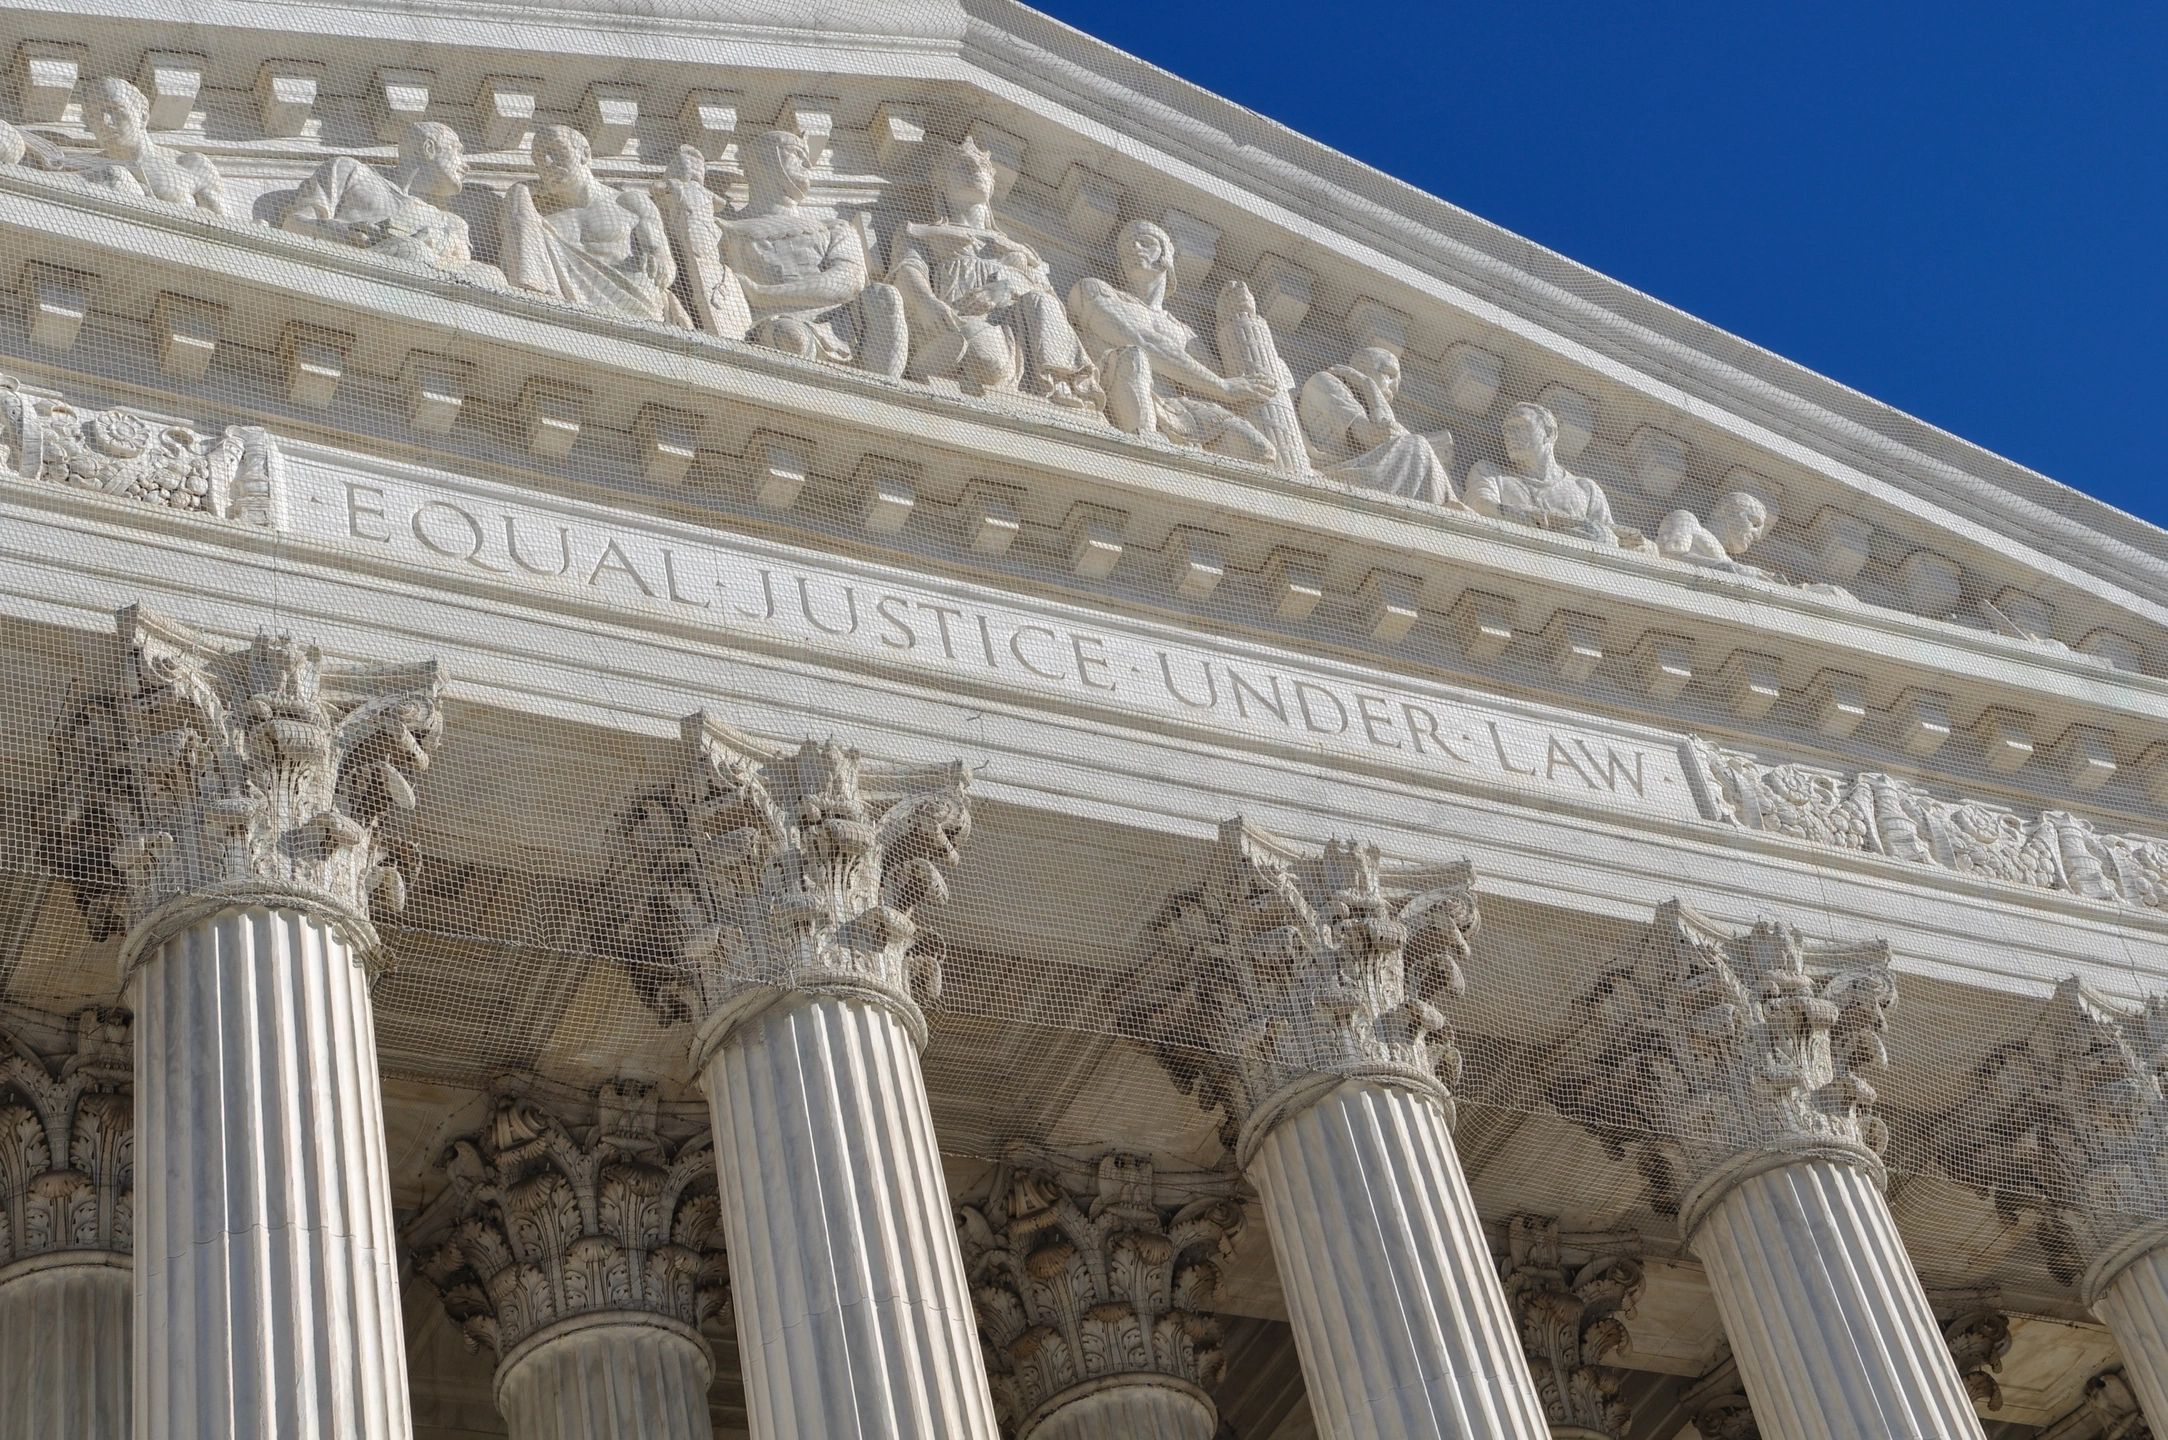 equal justice under the law - supreme court building